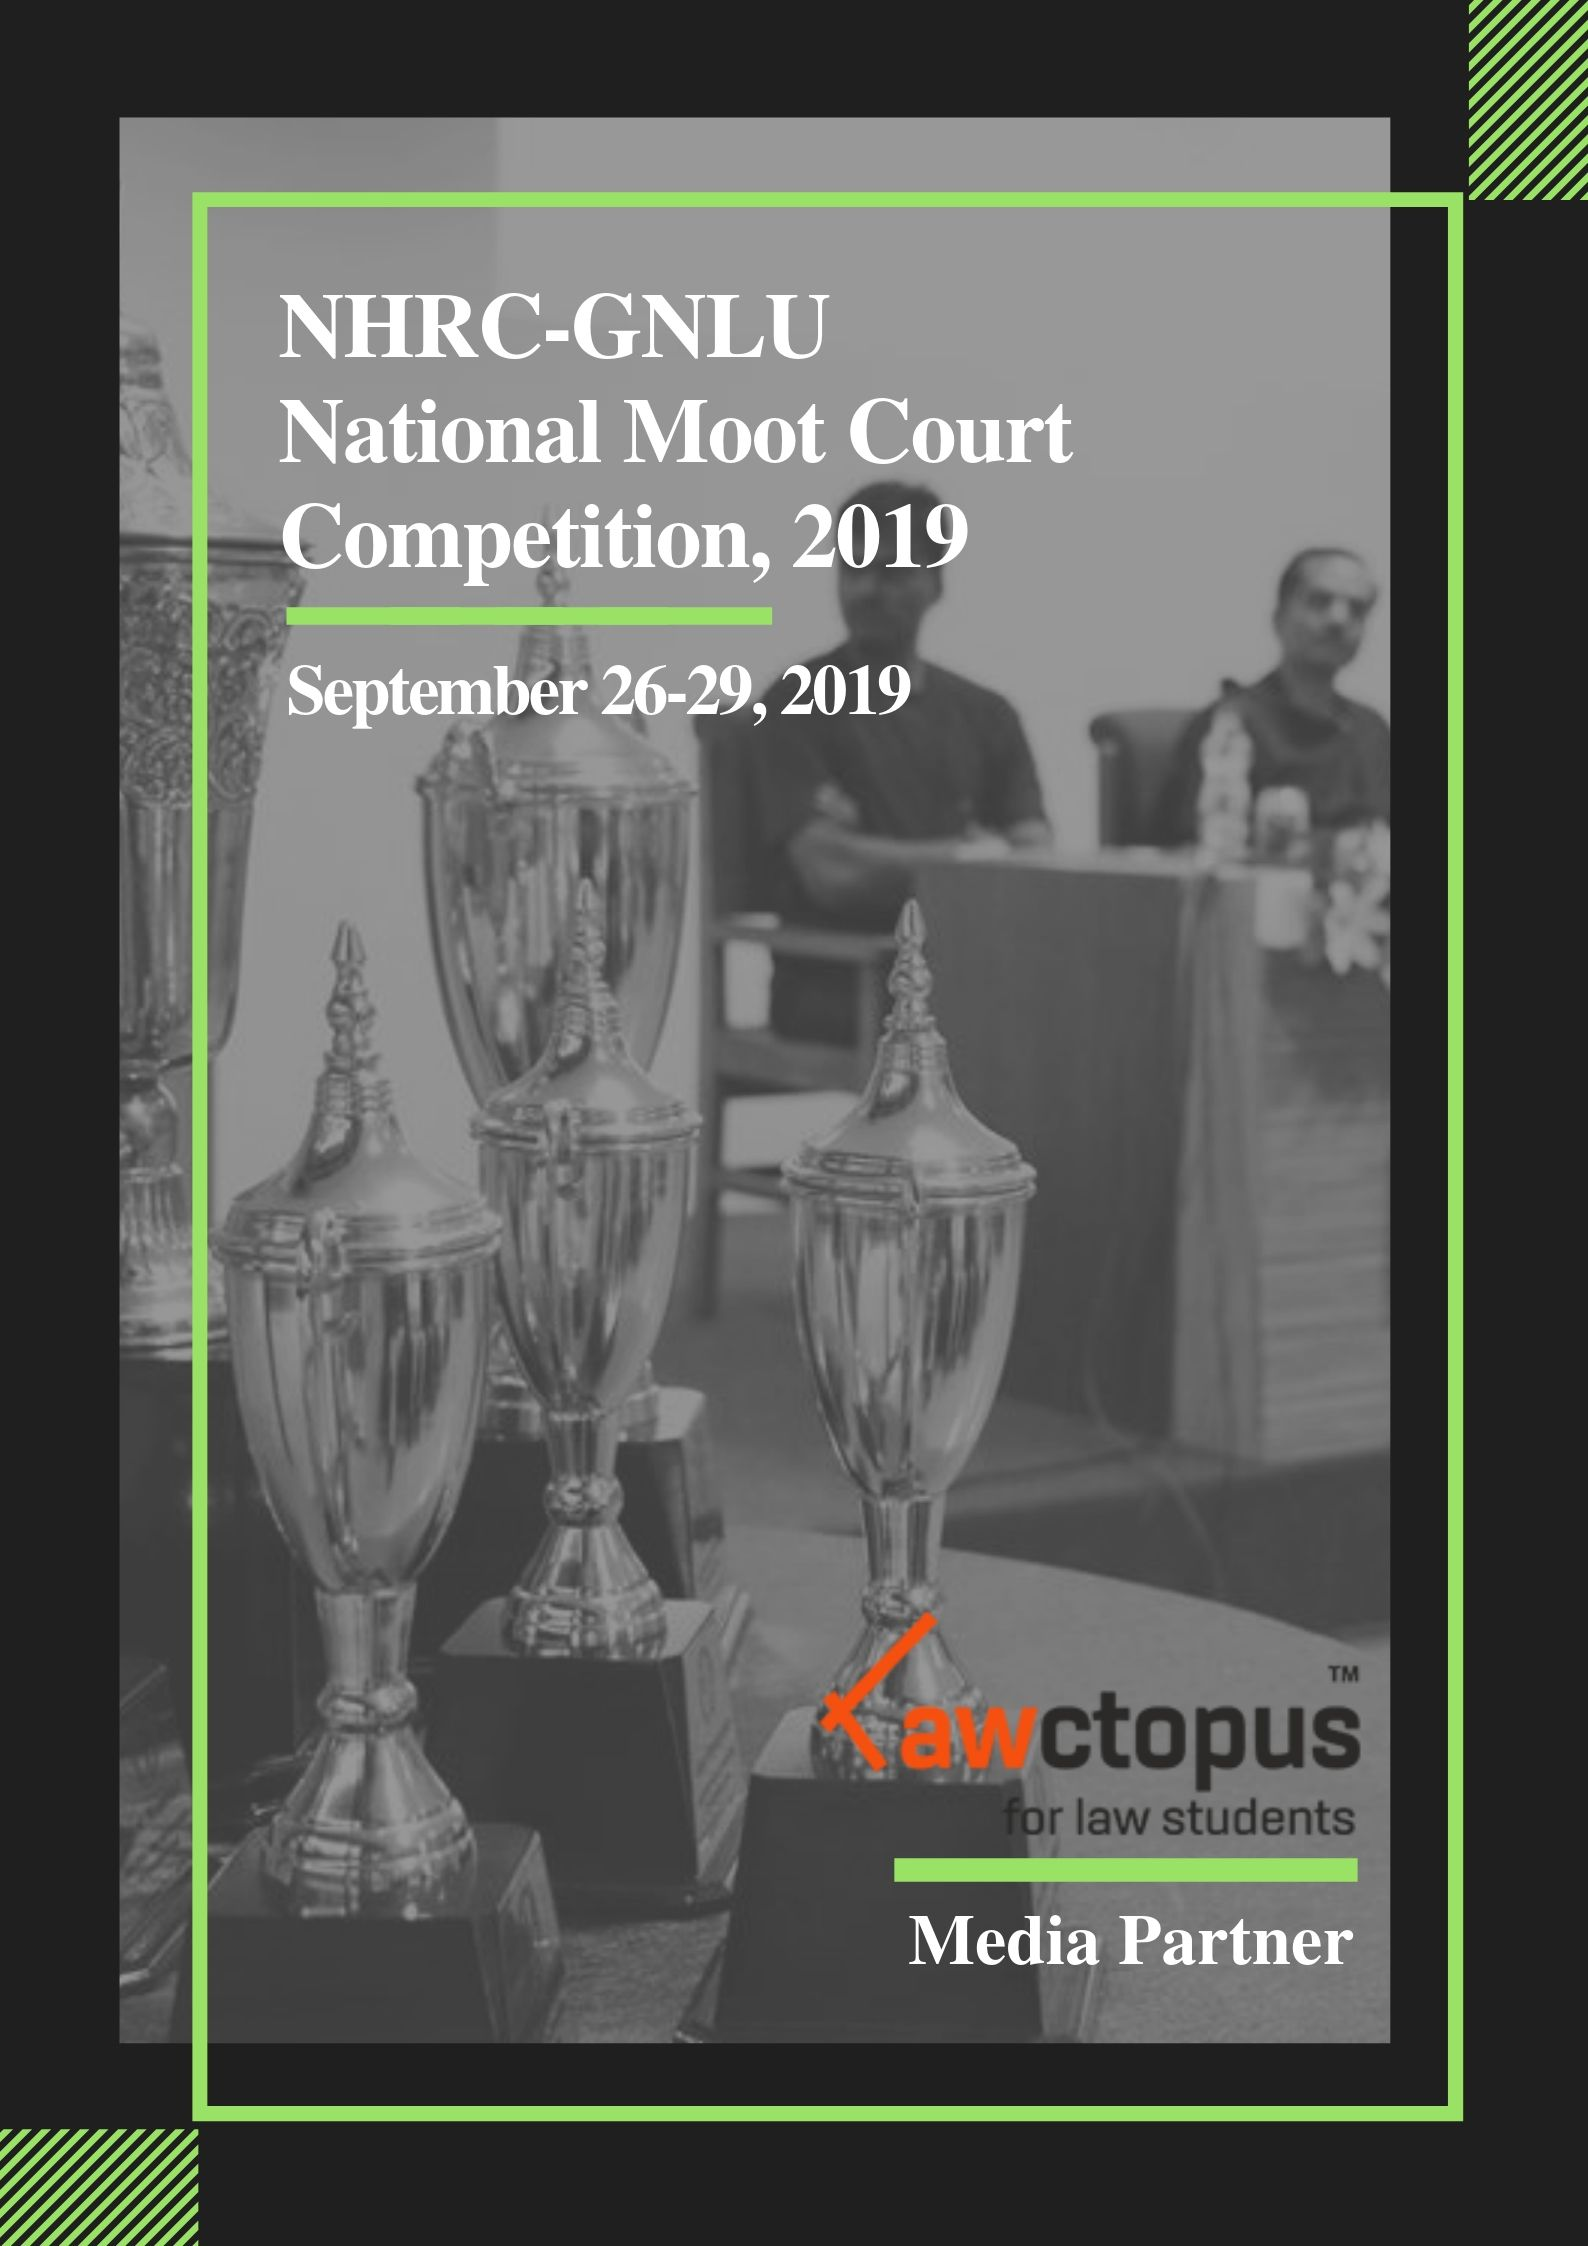 NHRC-GNLU National Moot Court Competition, 2019